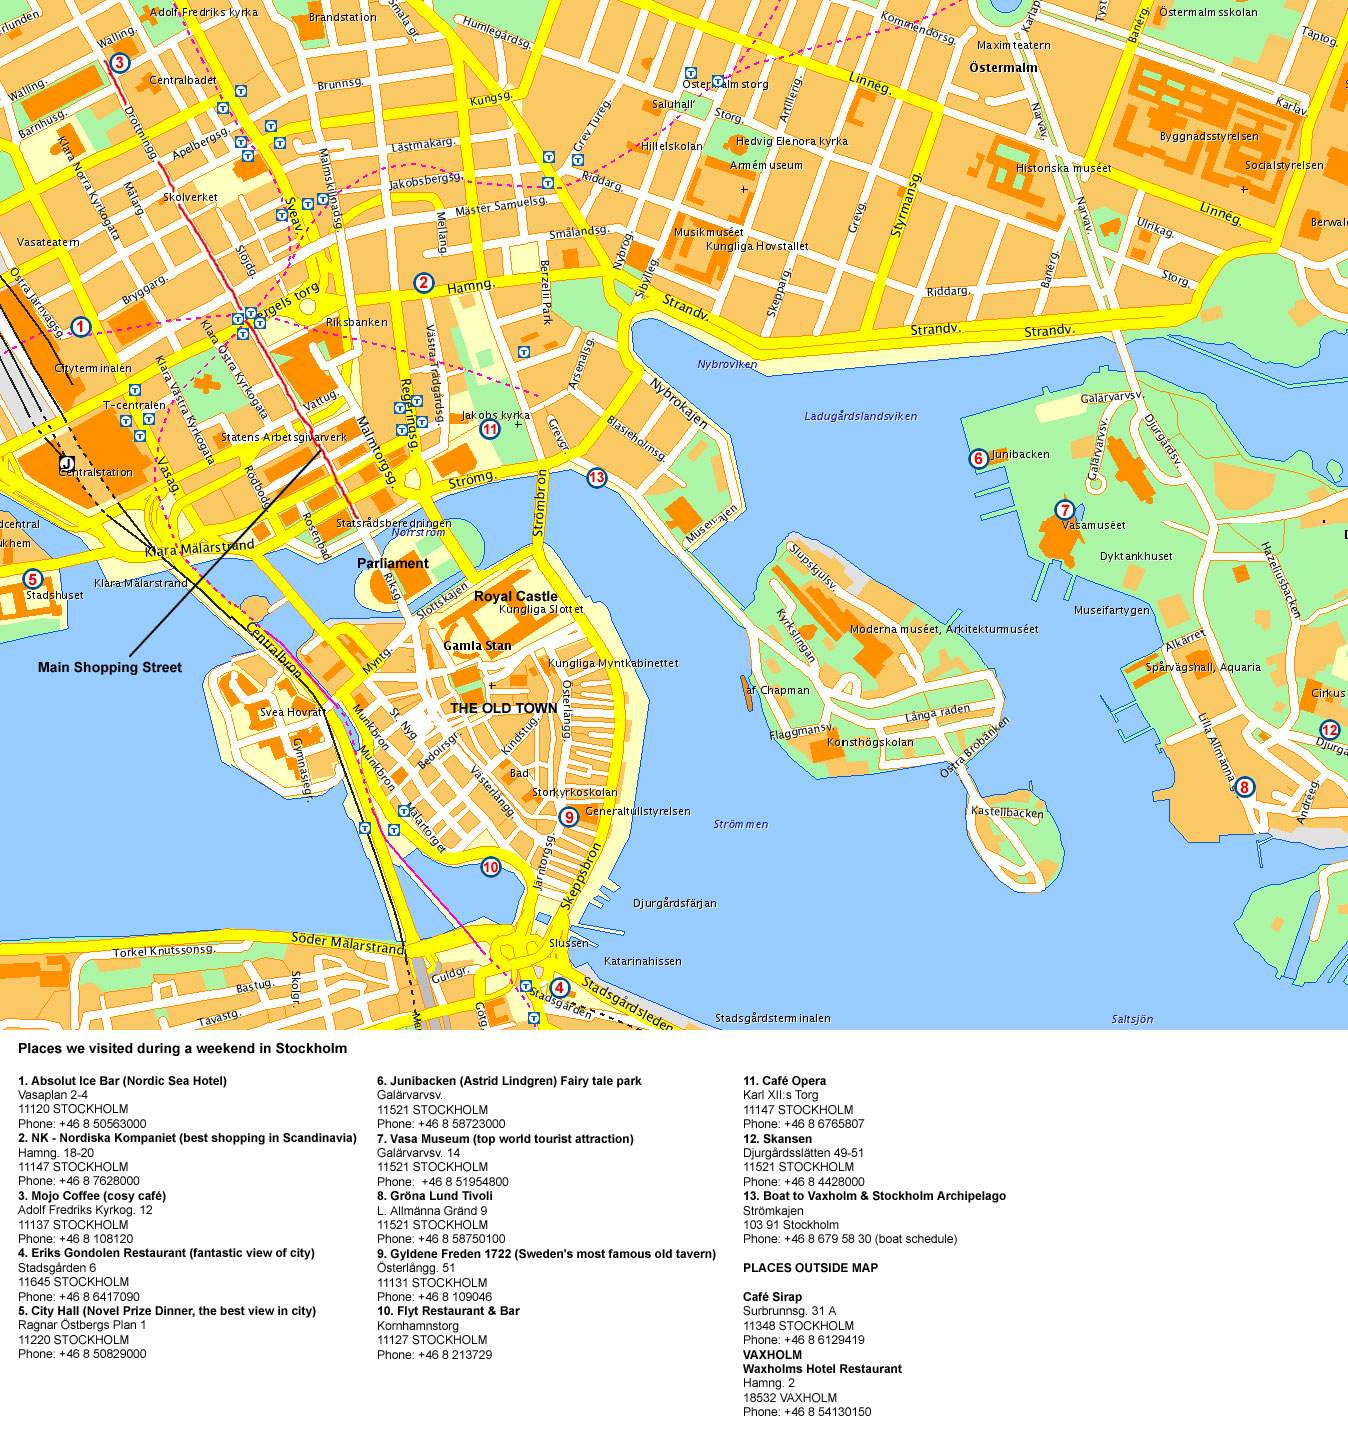 estocolmo mapa Large Stockholm Maps for Free Download and Print | High Resolution  estocolmo mapa